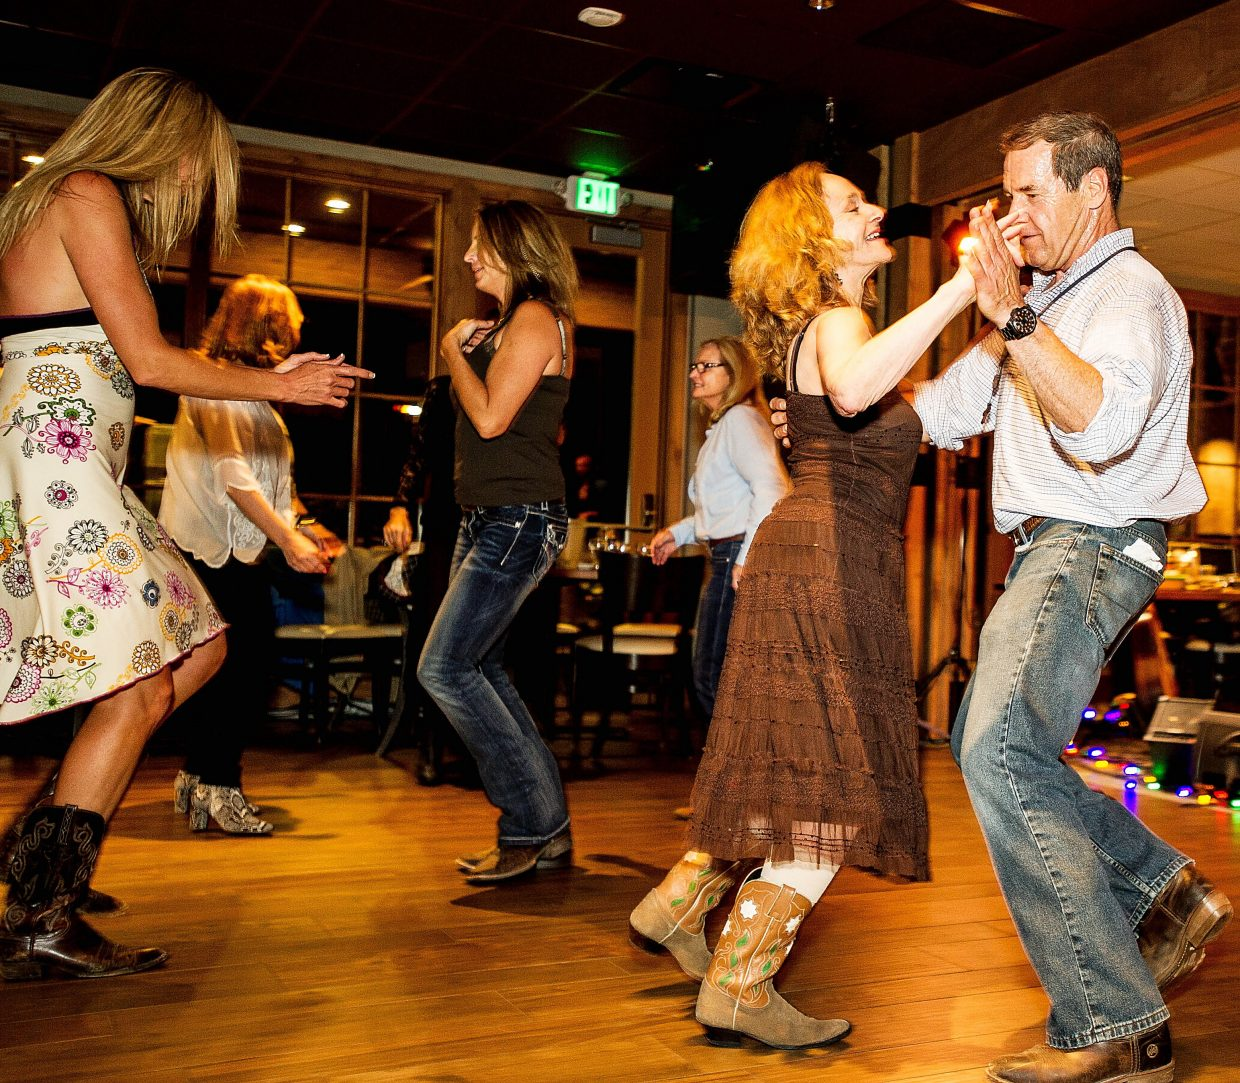 West Coast Swing is among the latest hot dances in the Western United States.